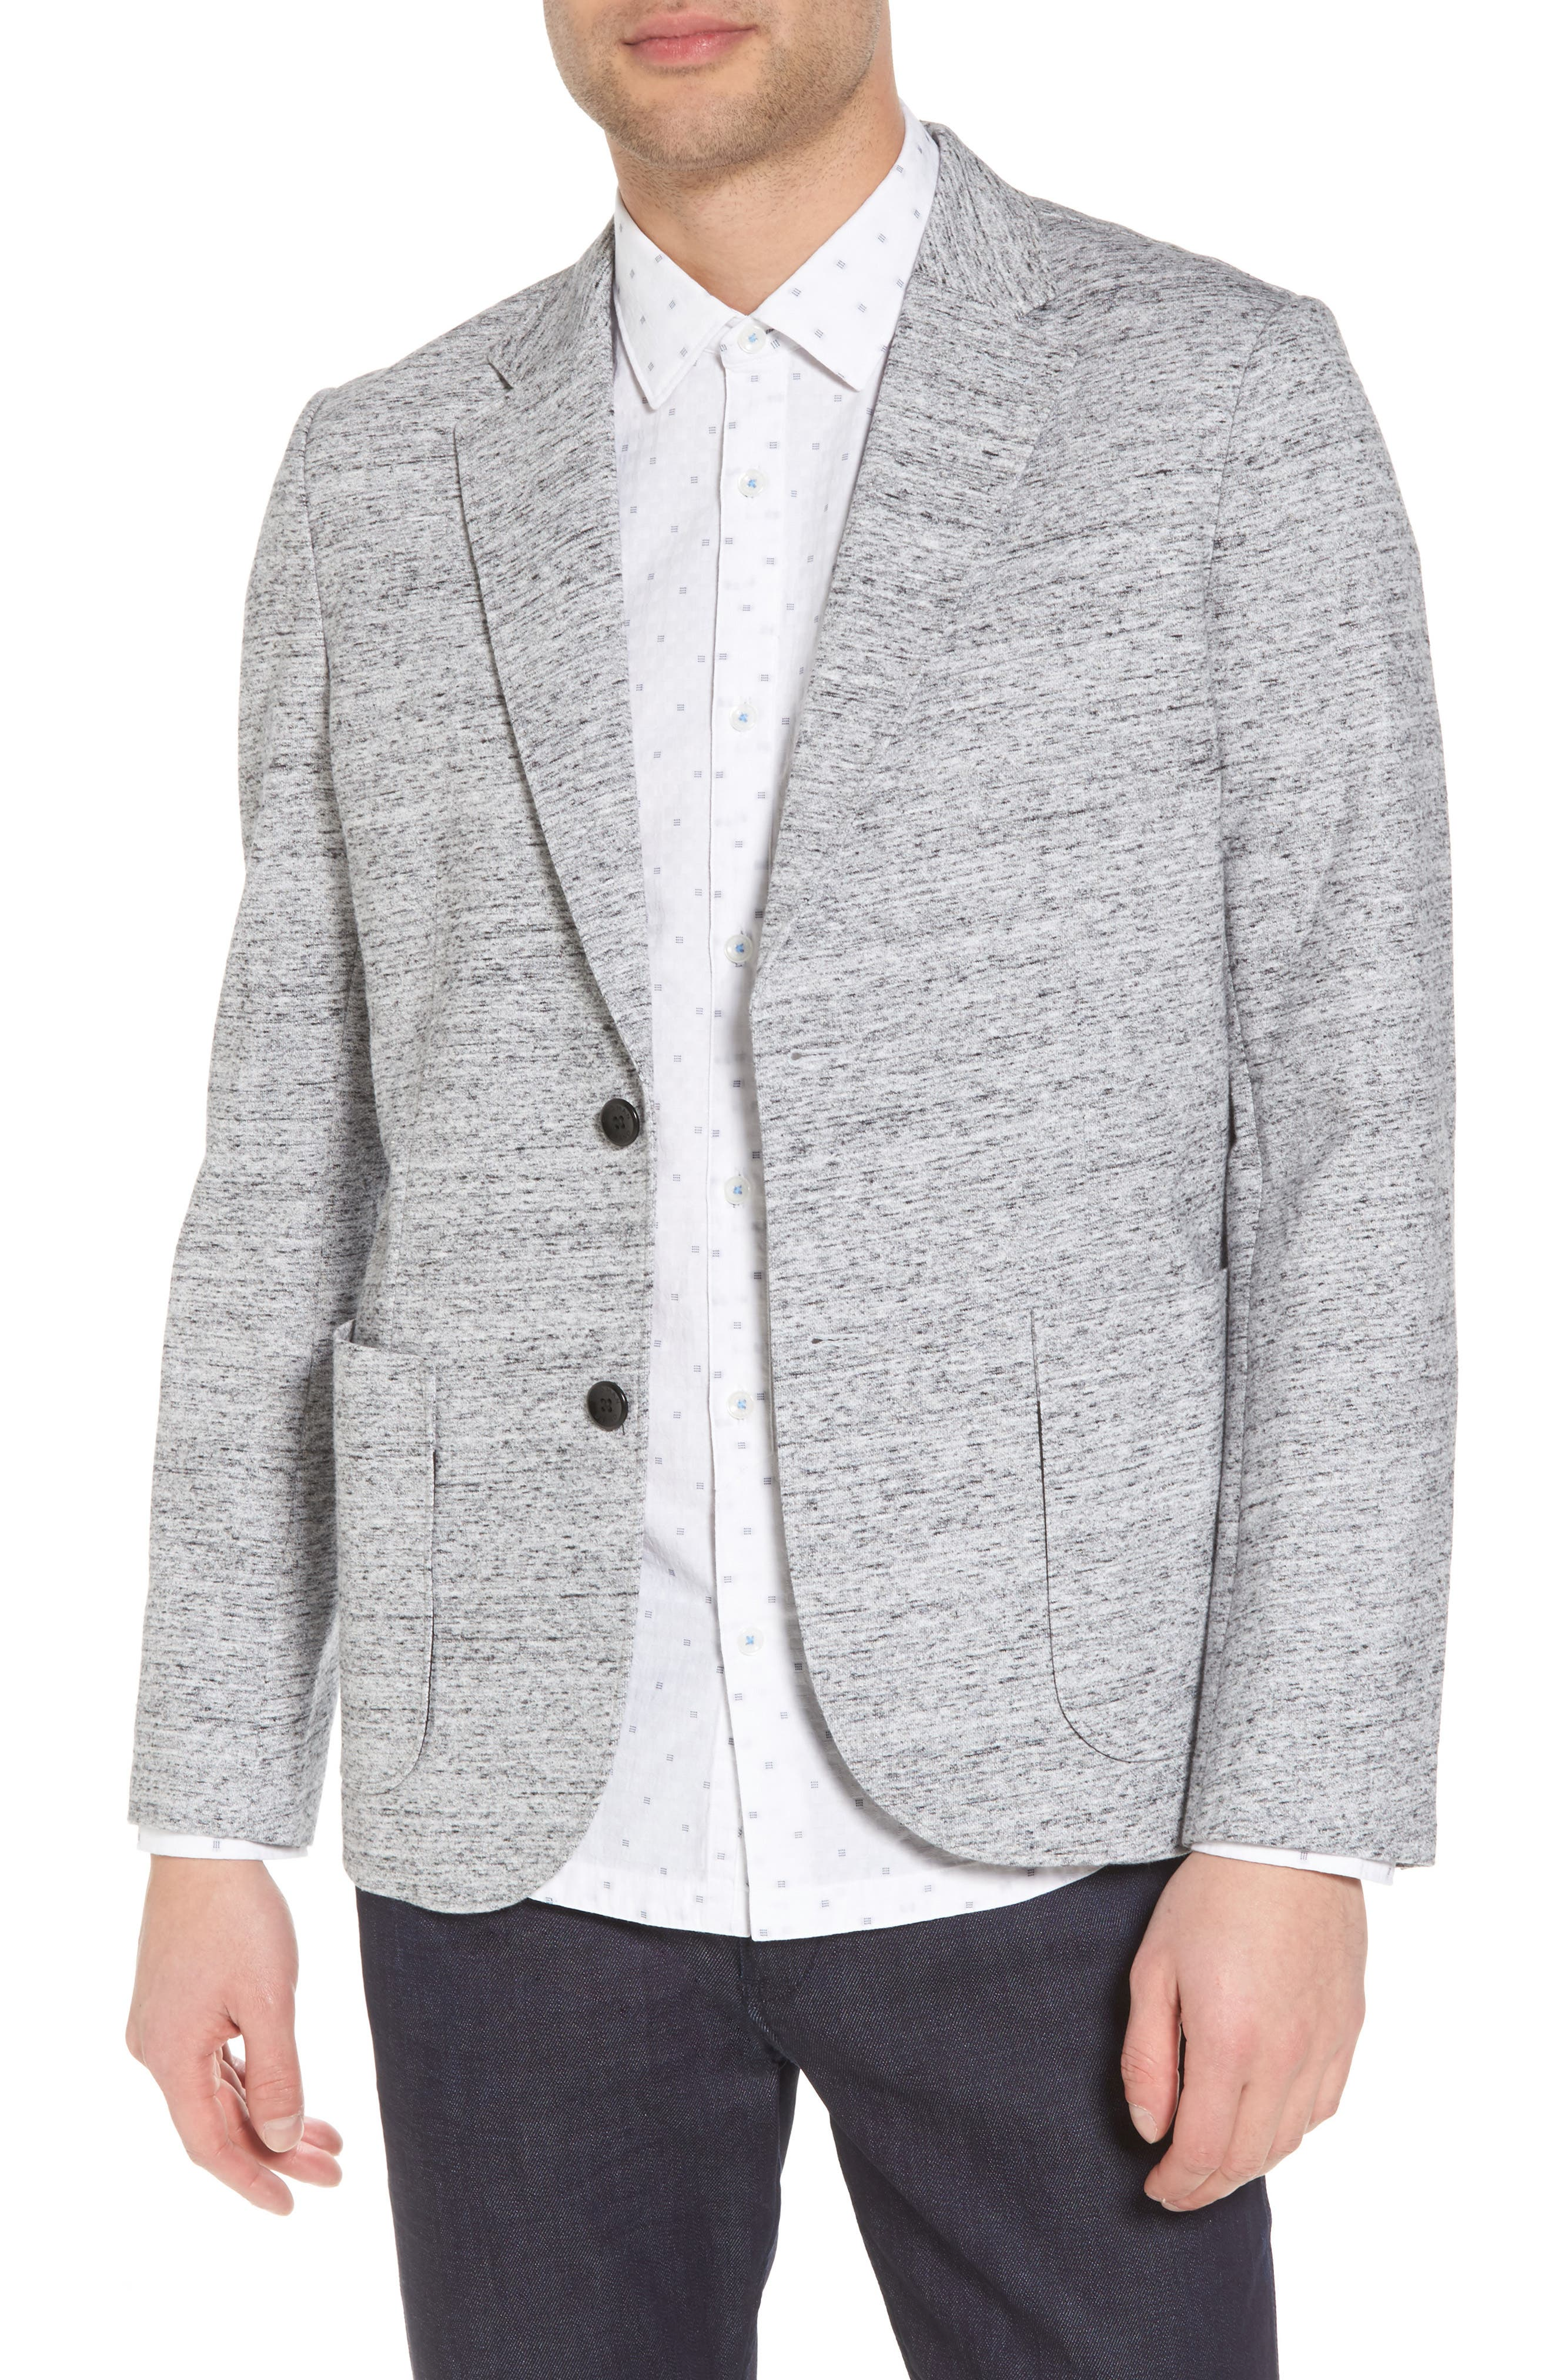 Soft Cotton Unconstructed Blazer,                             Main thumbnail 1, color,                             Grey Heather / White